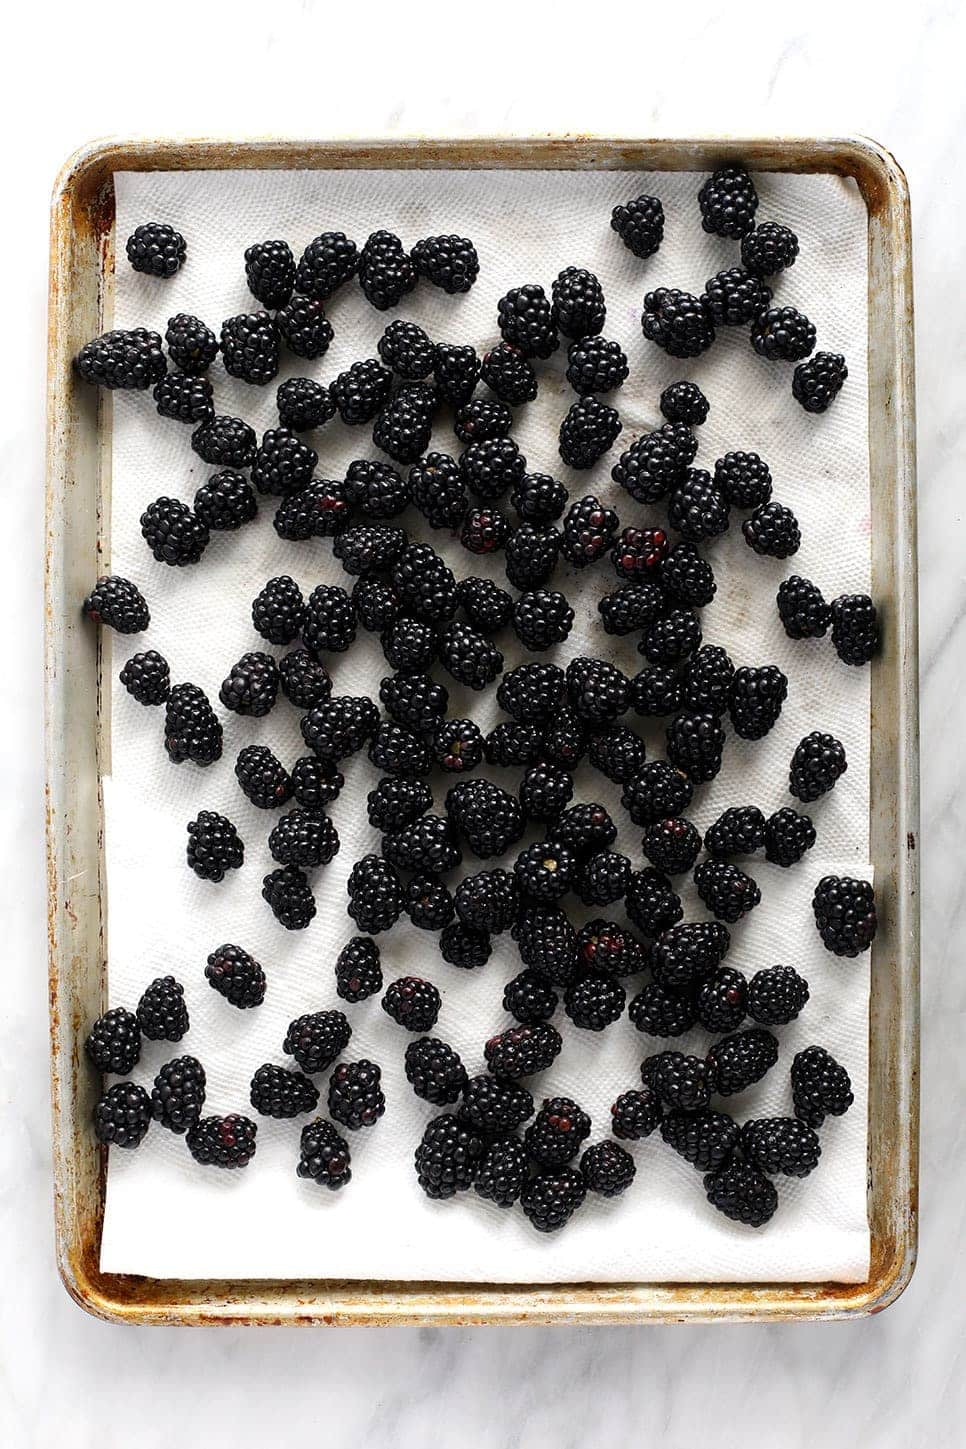 blackberries on a baking sheet and paper towel drying